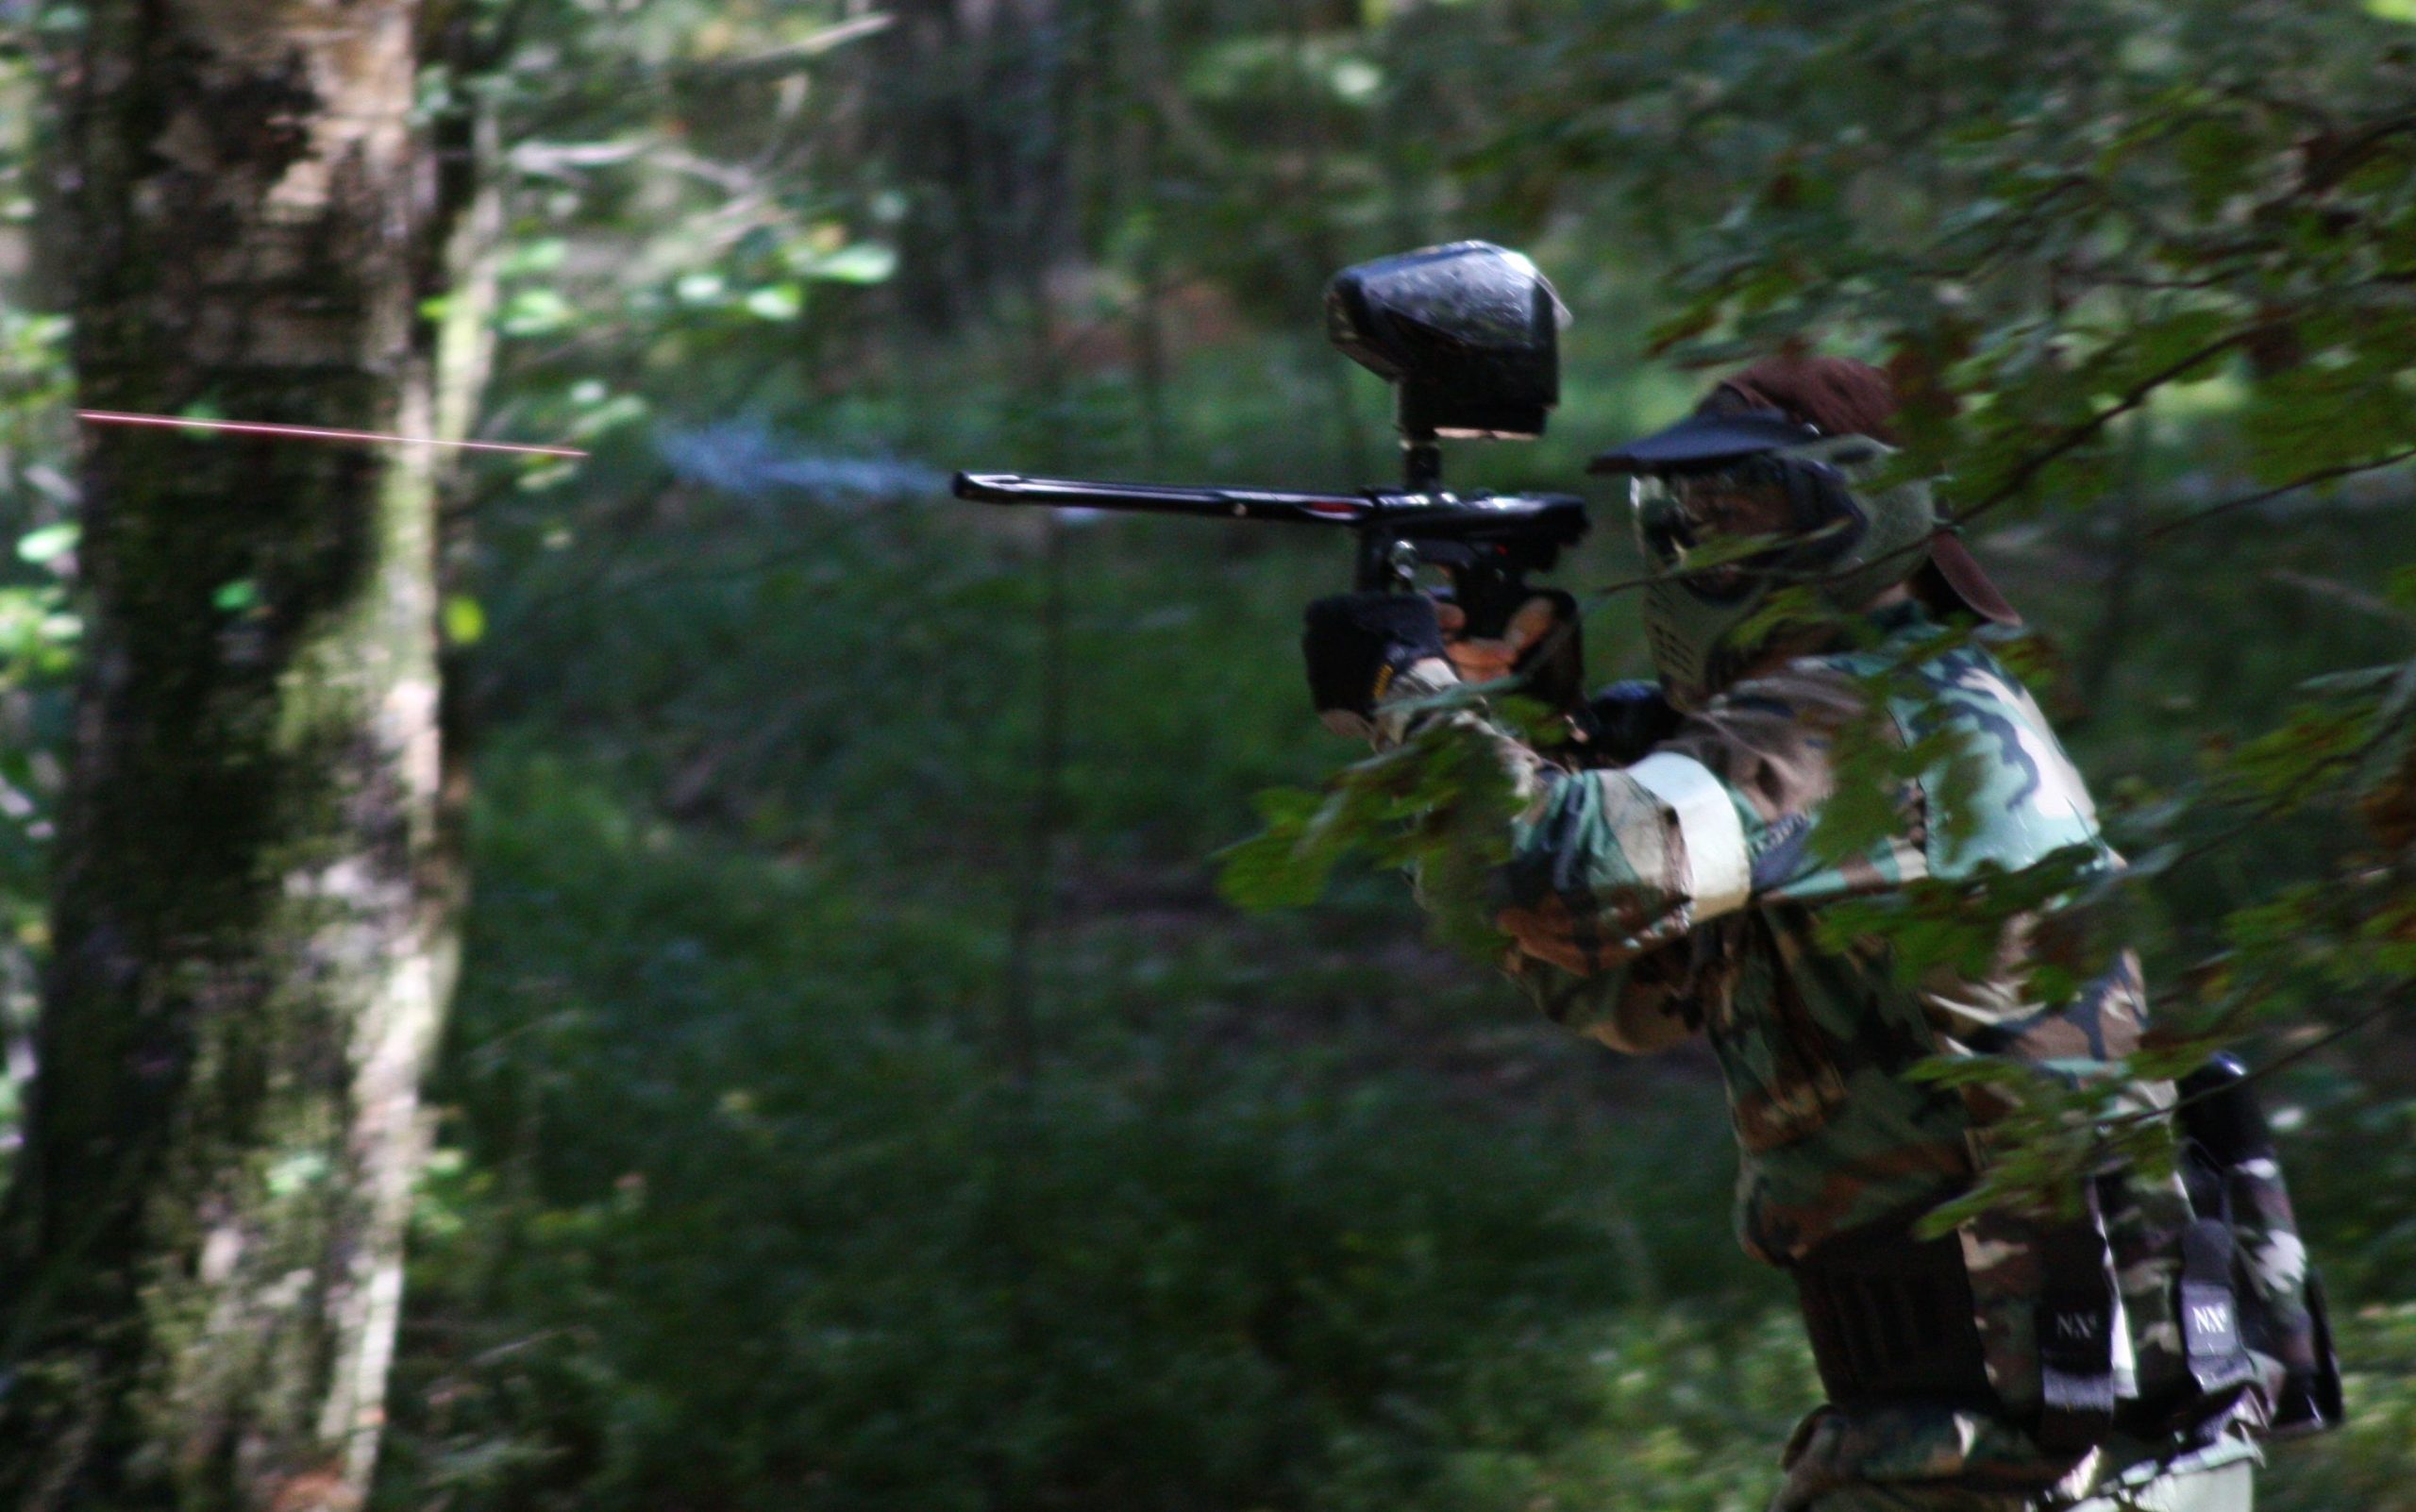 Paintball (photo credit: Creative Commons)